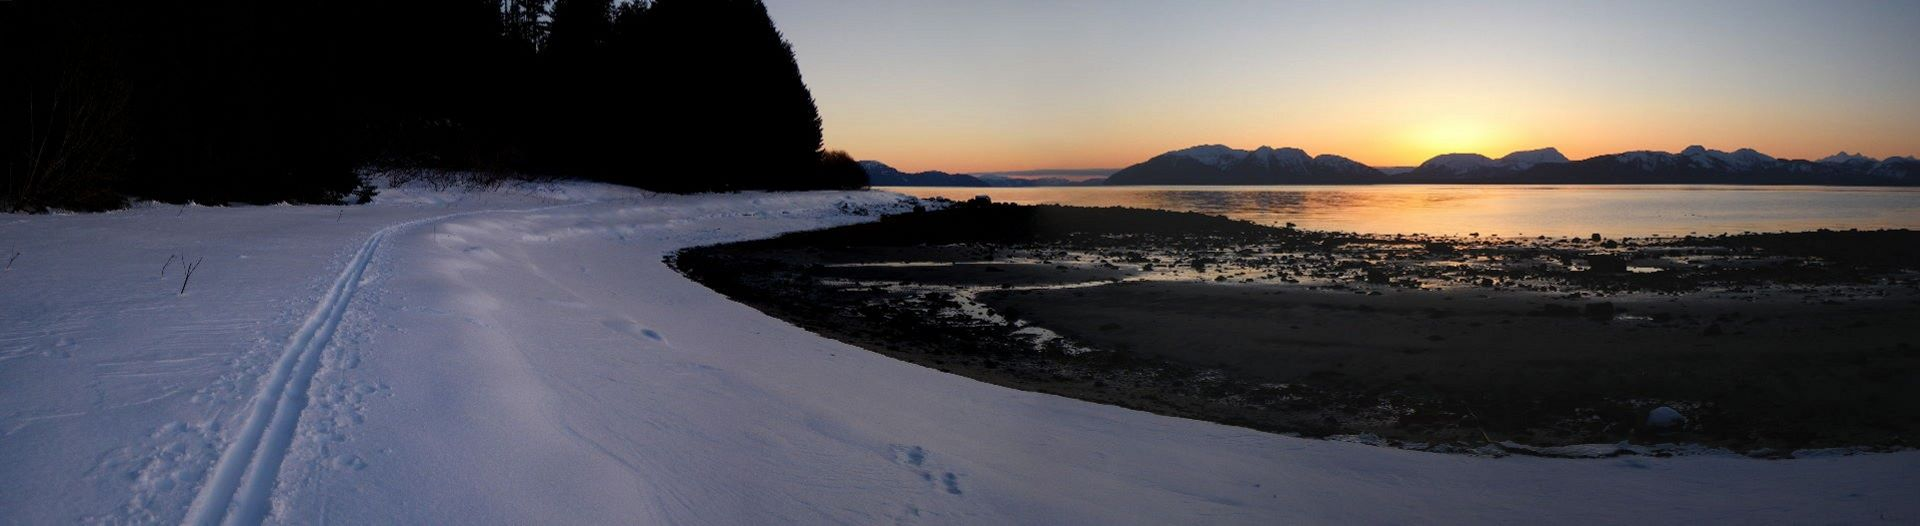 Winter ski-ing in the upper intertidal next to the ocean in the short days.